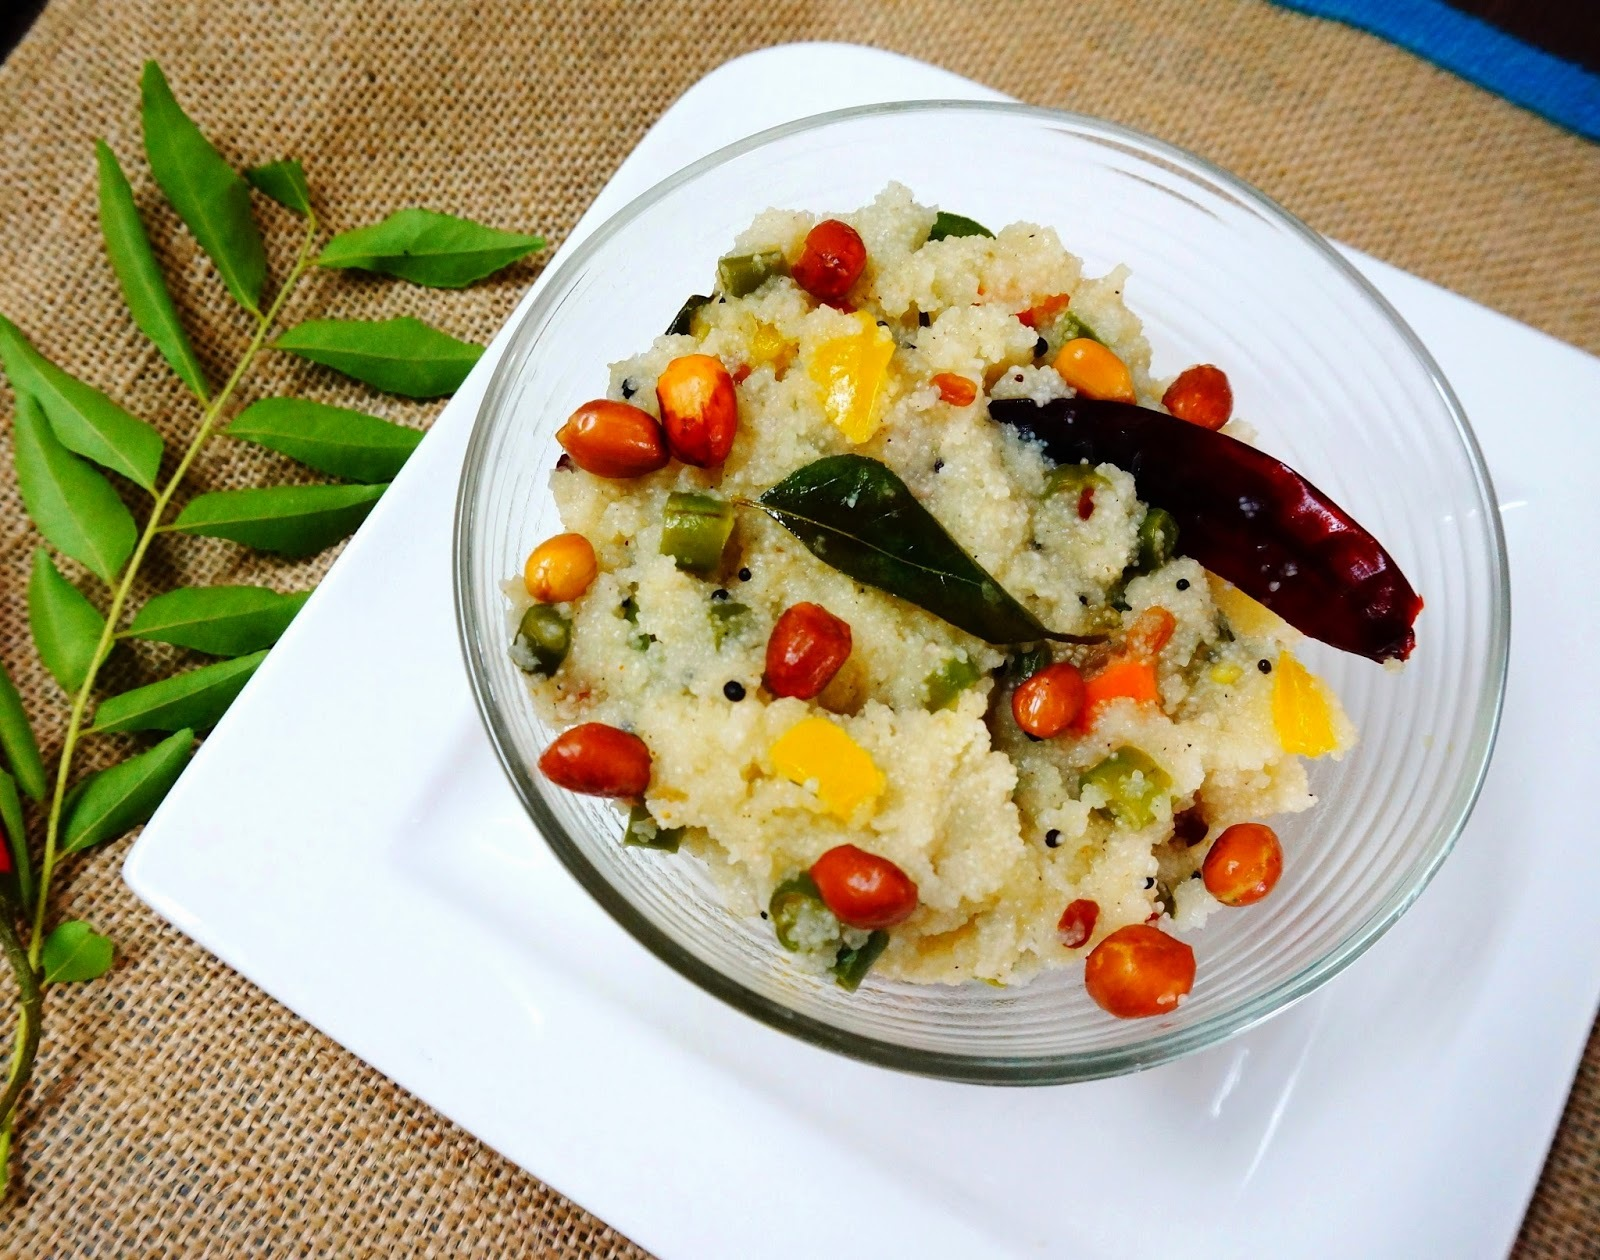 Recipe of vegetable Upma